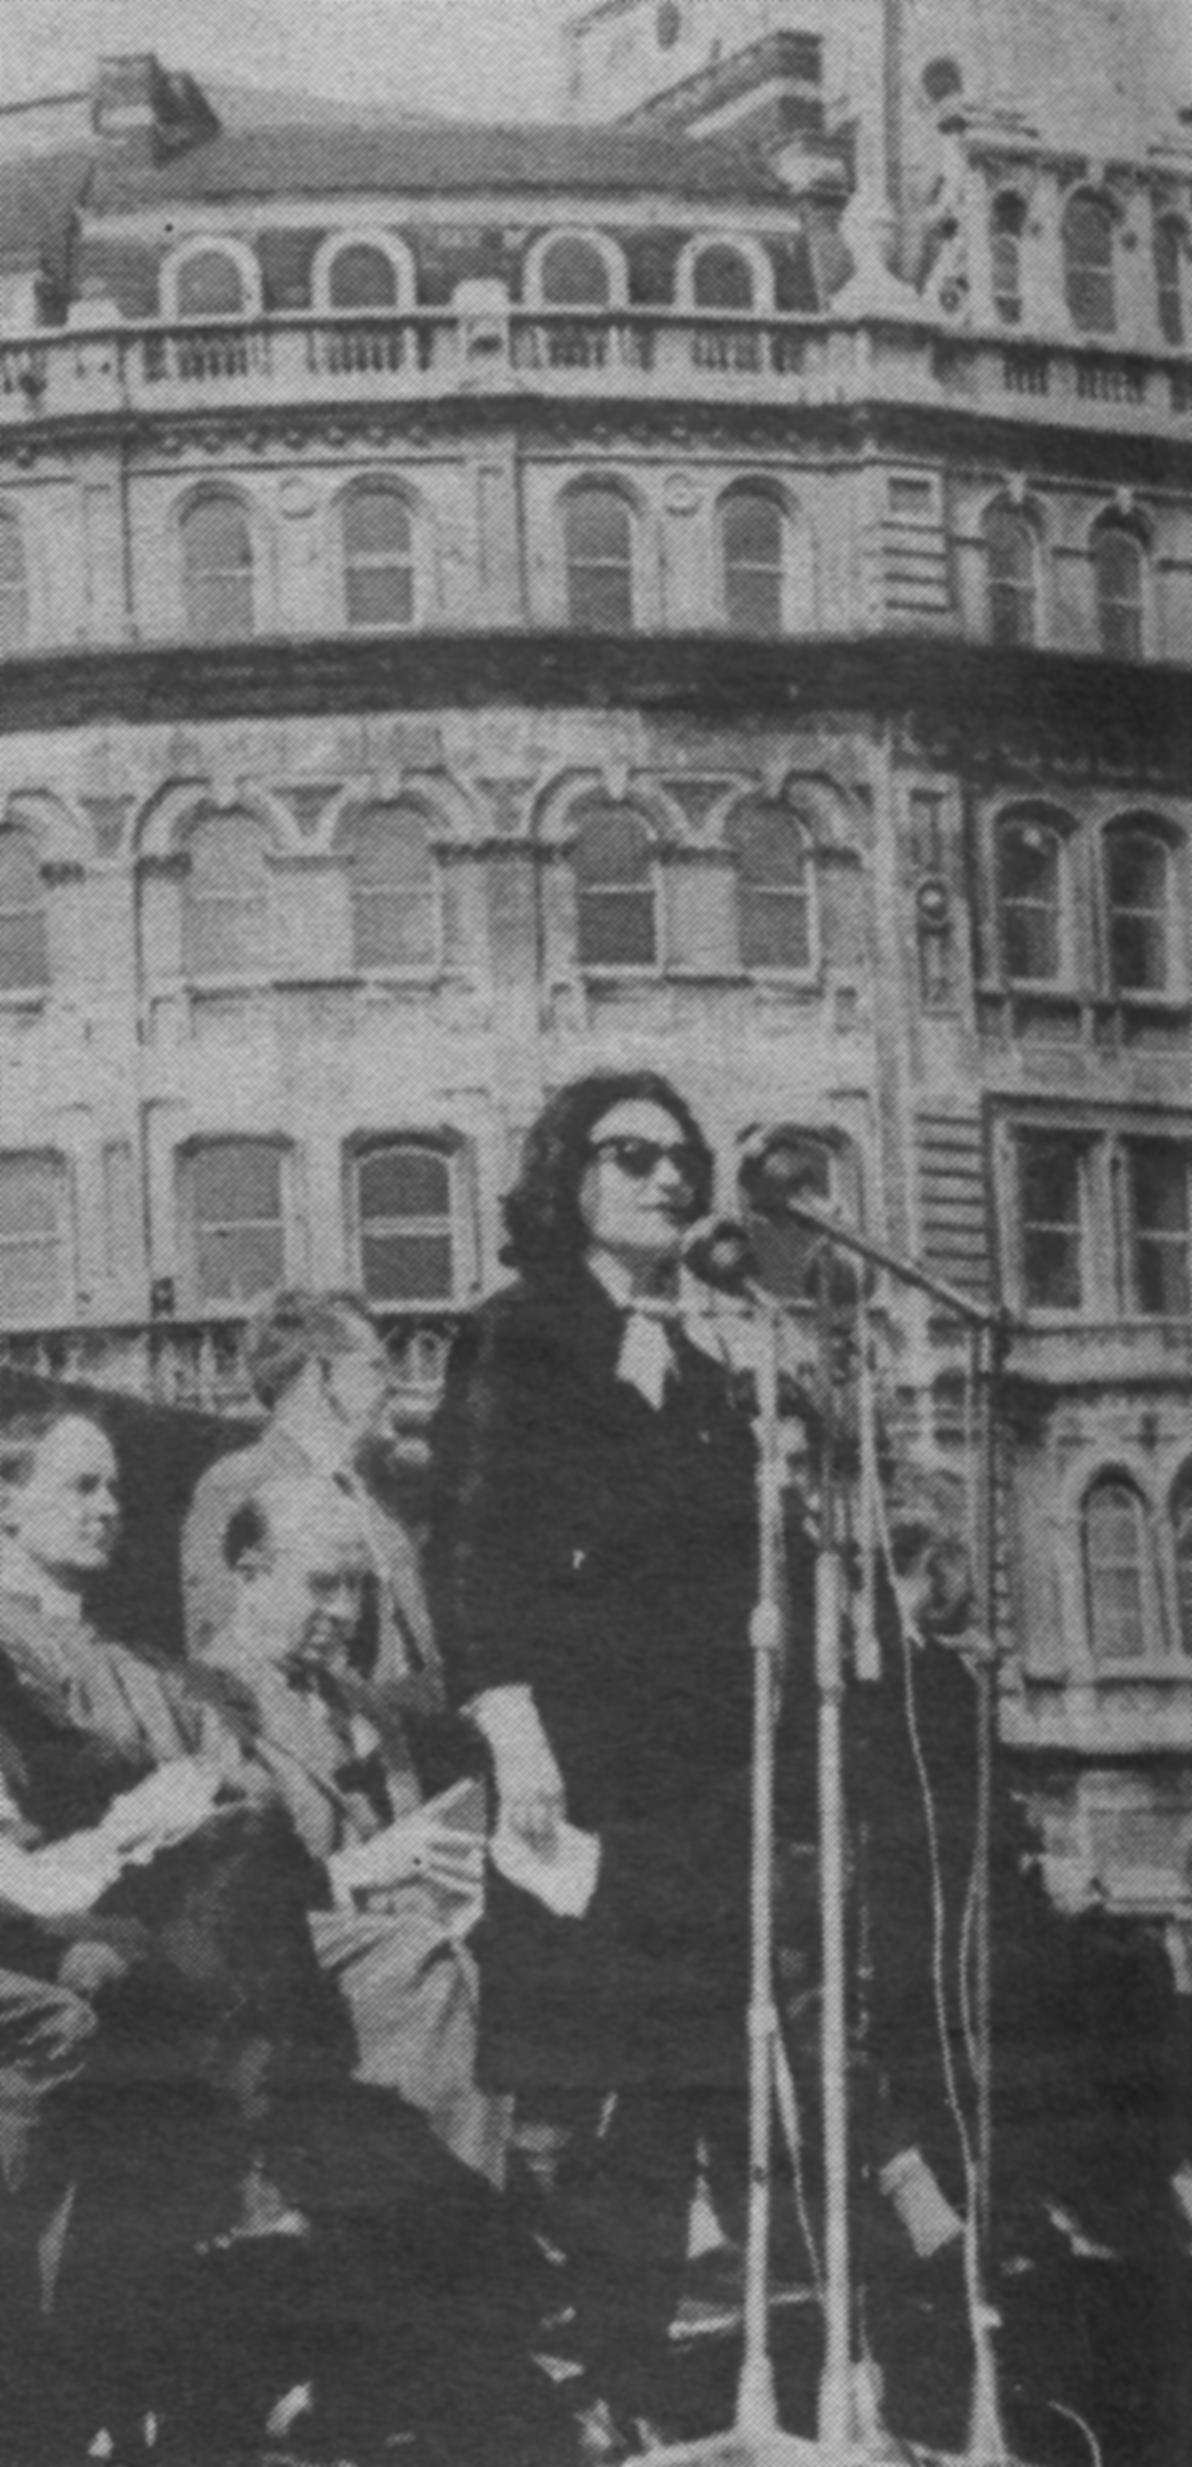 Ruth speaking in Trafalgar Square, London